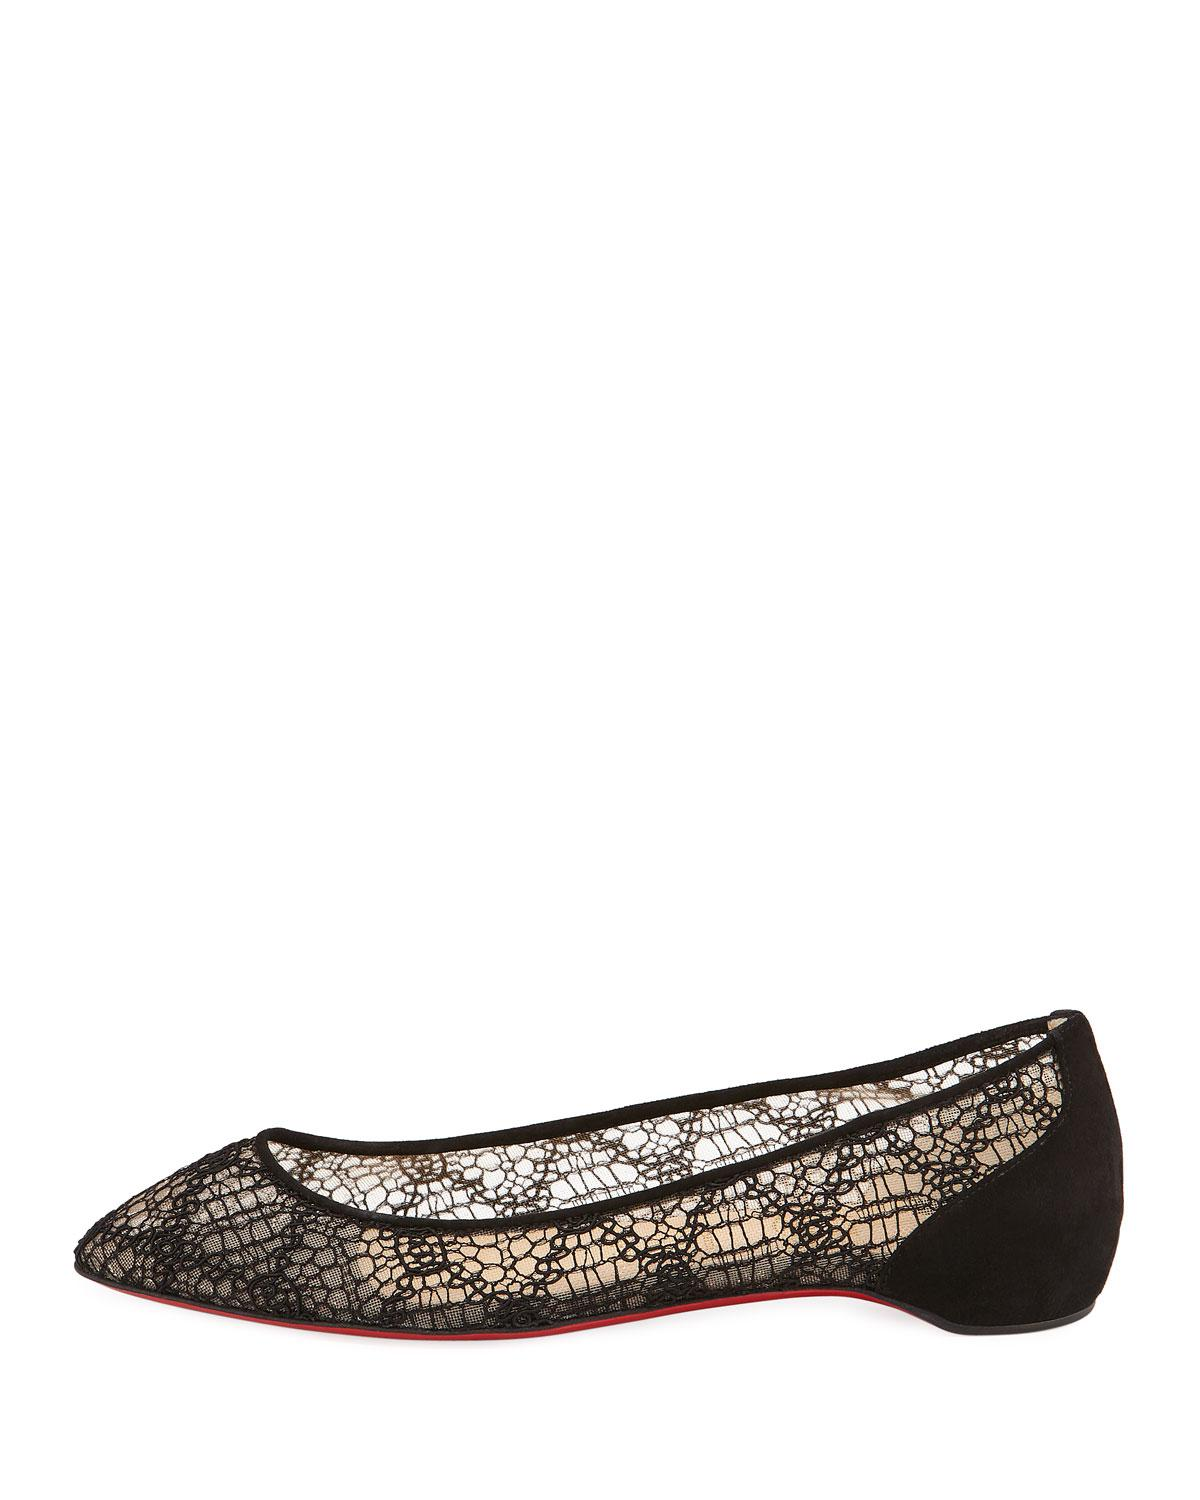 the best attitude 82215 62fb0 Christian Louboutin Black Eloise Lace Red Sole Ballet Flats